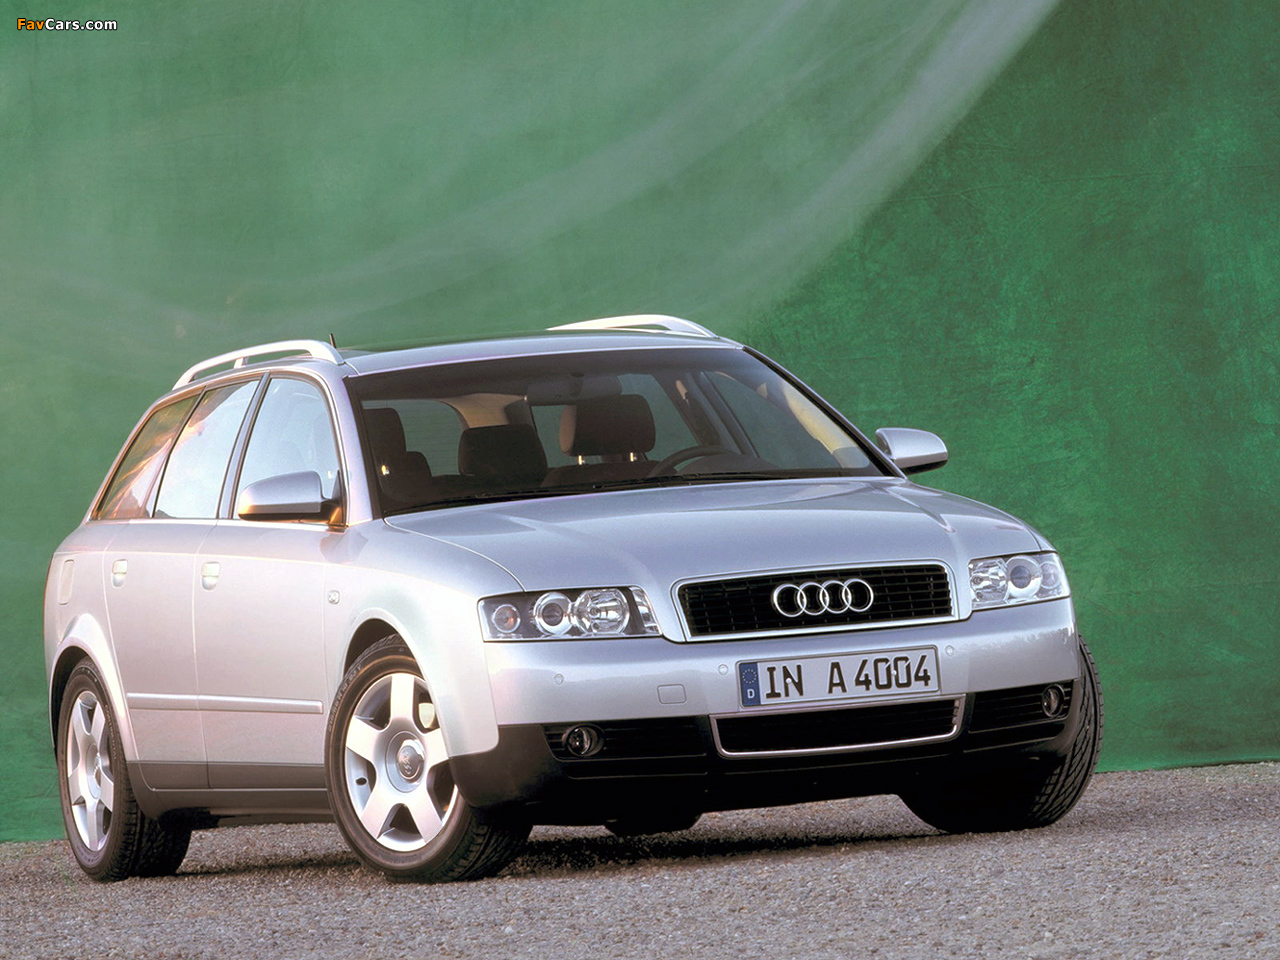 audi a4 avant 8e 2004 models auto. Black Bedroom Furniture Sets. Home Design Ideas